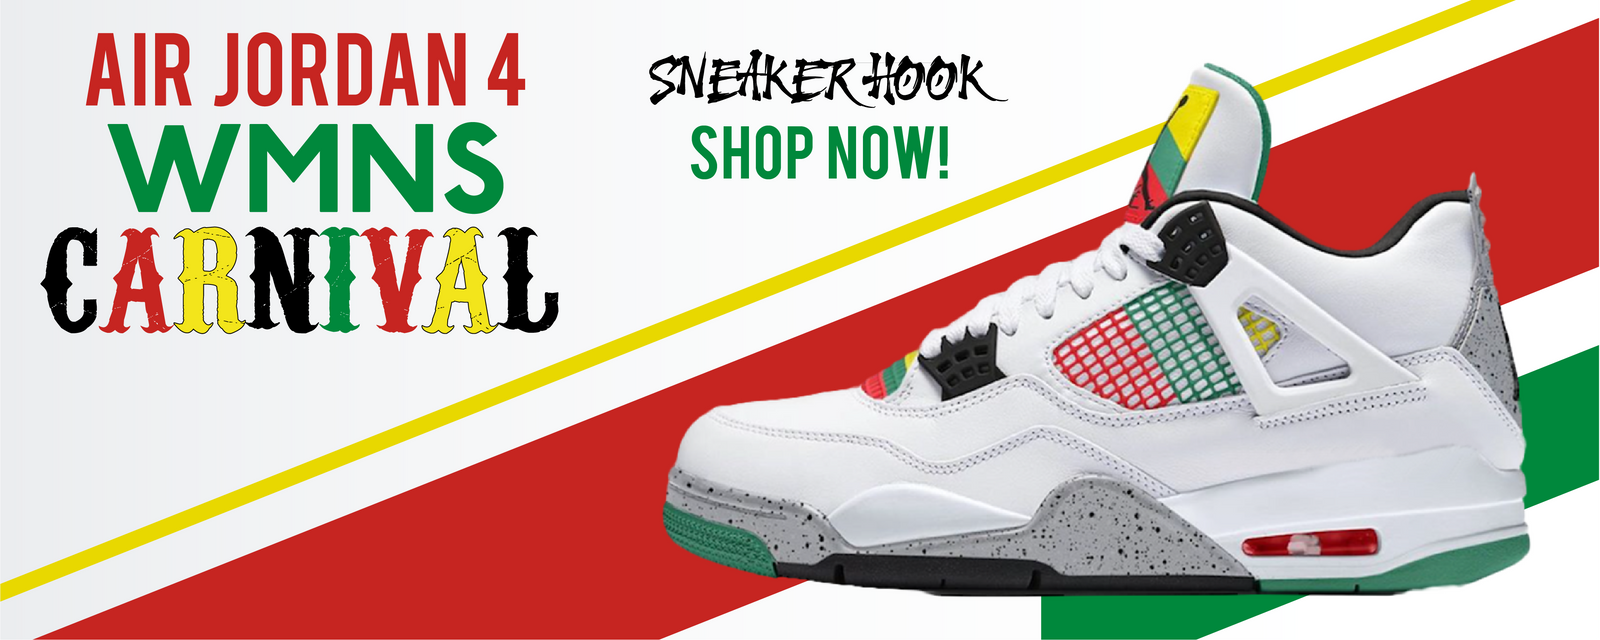 Jordan 4 WMNS Carnival Clothing to match Sneakers | Clothing to match Do The Right Thing 4S Carnival Shoes